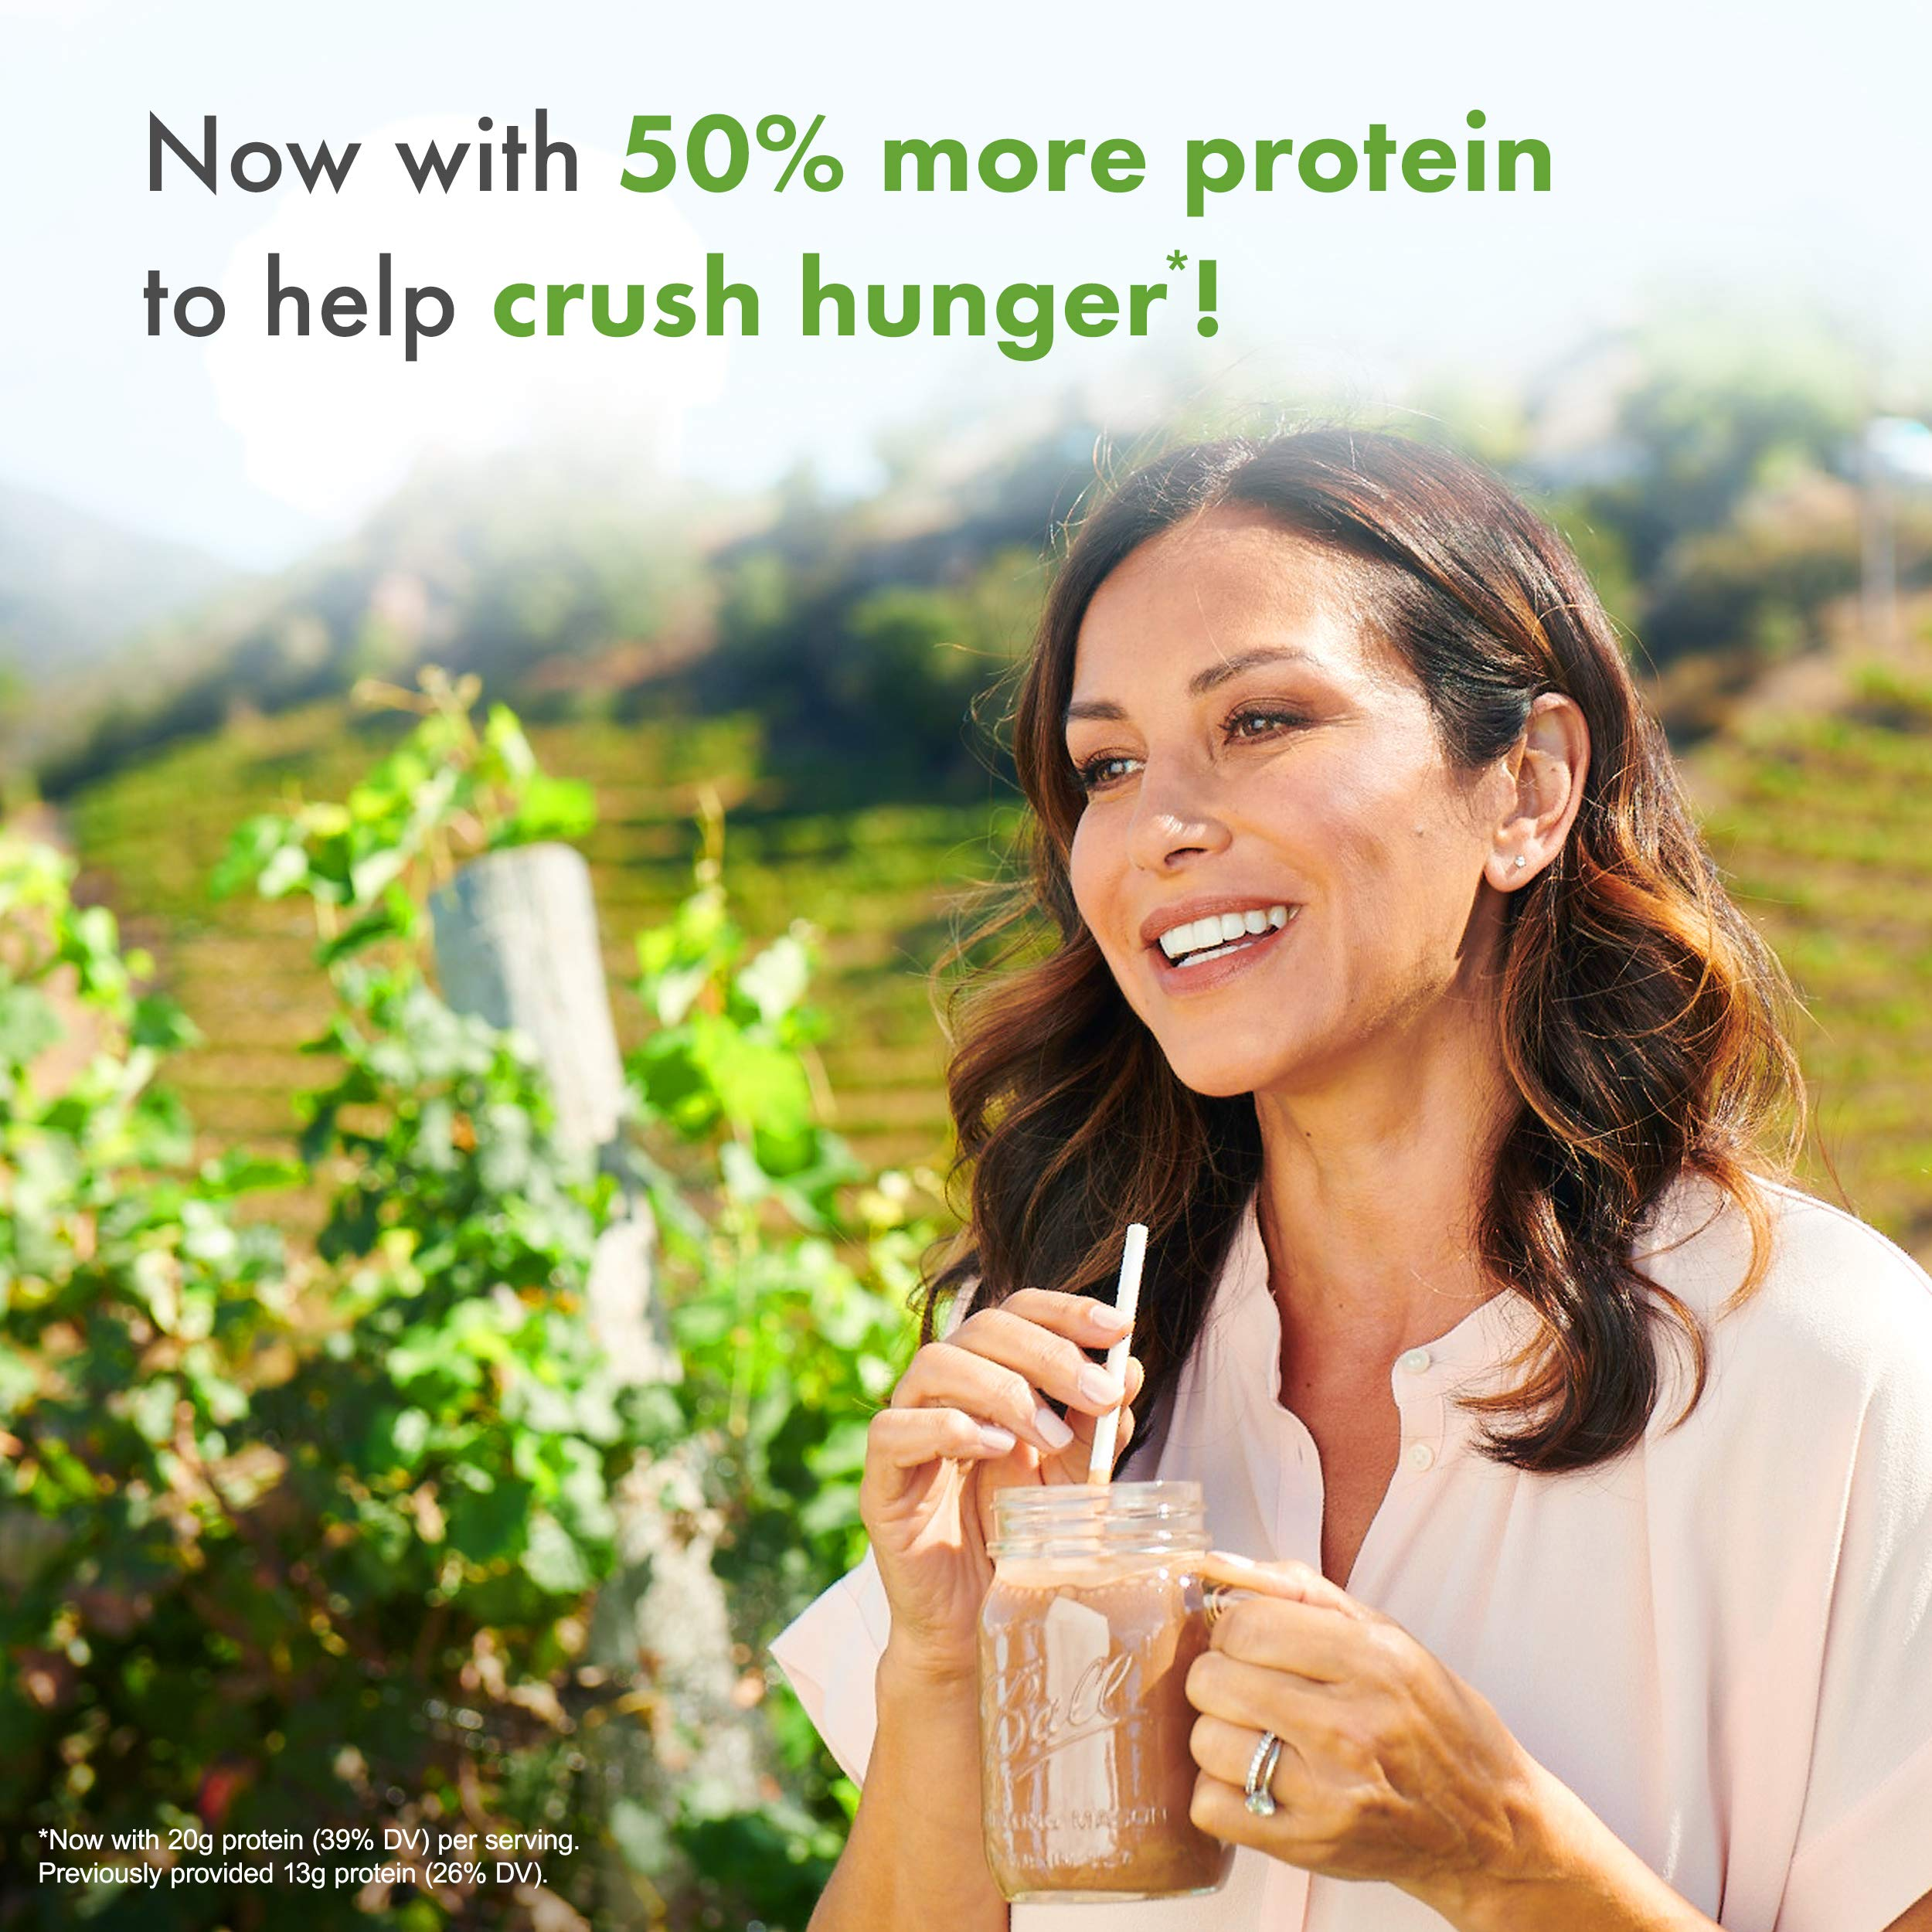 Nutrisystem® NutriCRUSH® Chocolate Shake Mix, 20 Count, Now with 50% More Protein by Nutrisystem (Image #5)